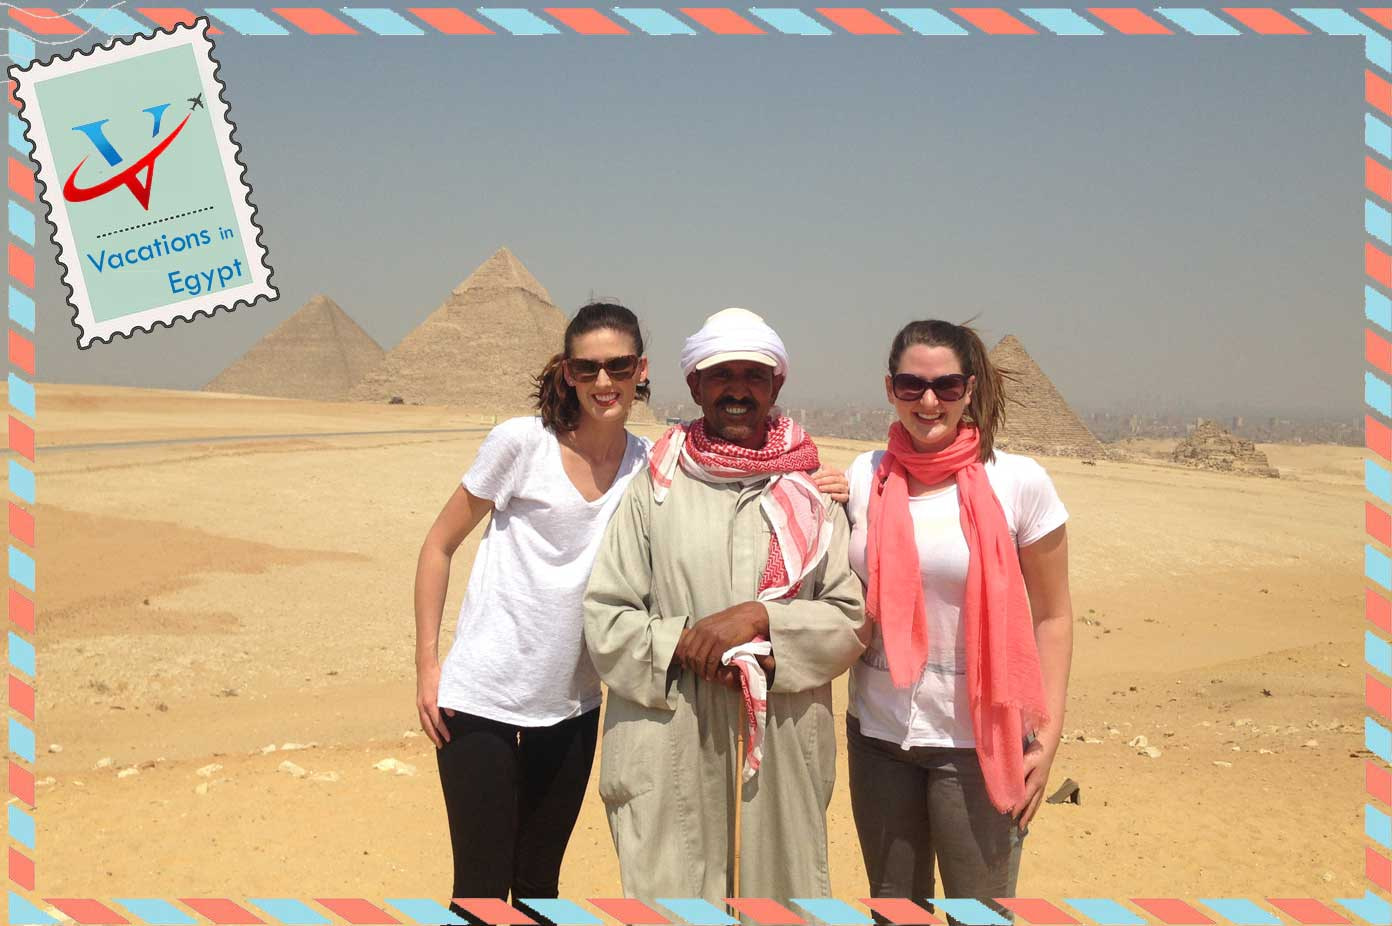 Excursions in Egypt